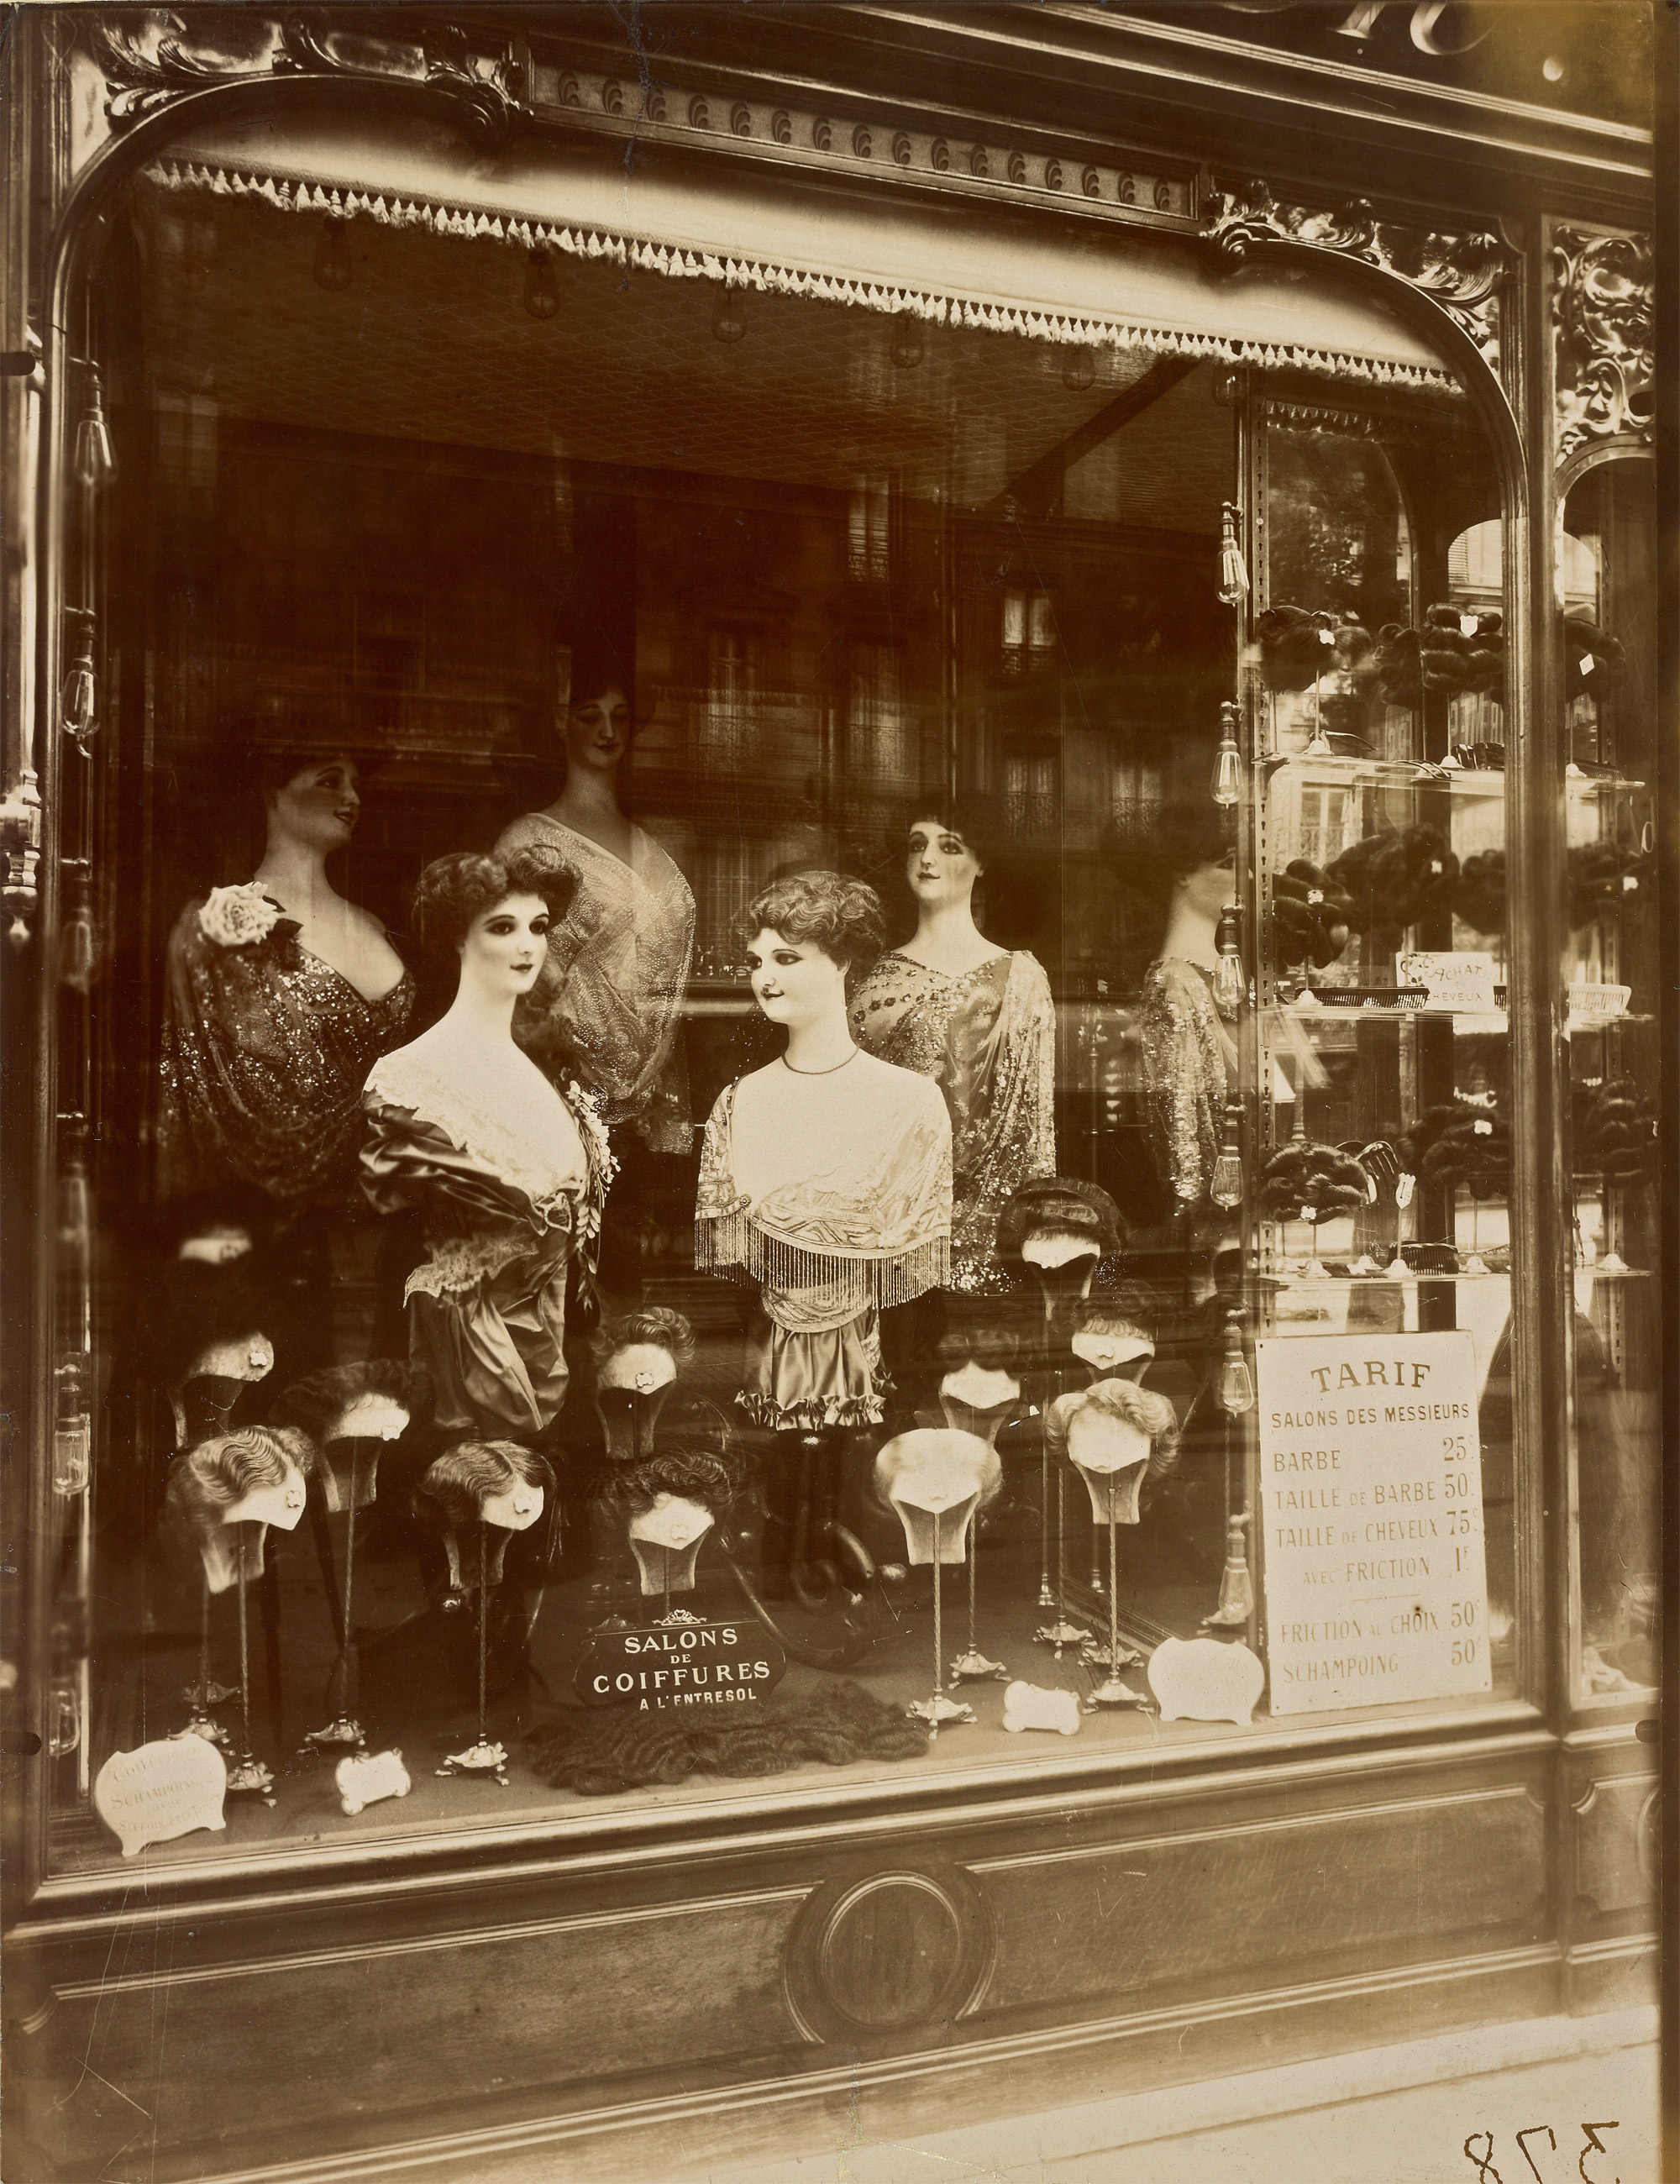 Salon Vintage Paris Salons De Coiffures 1912 Vergue